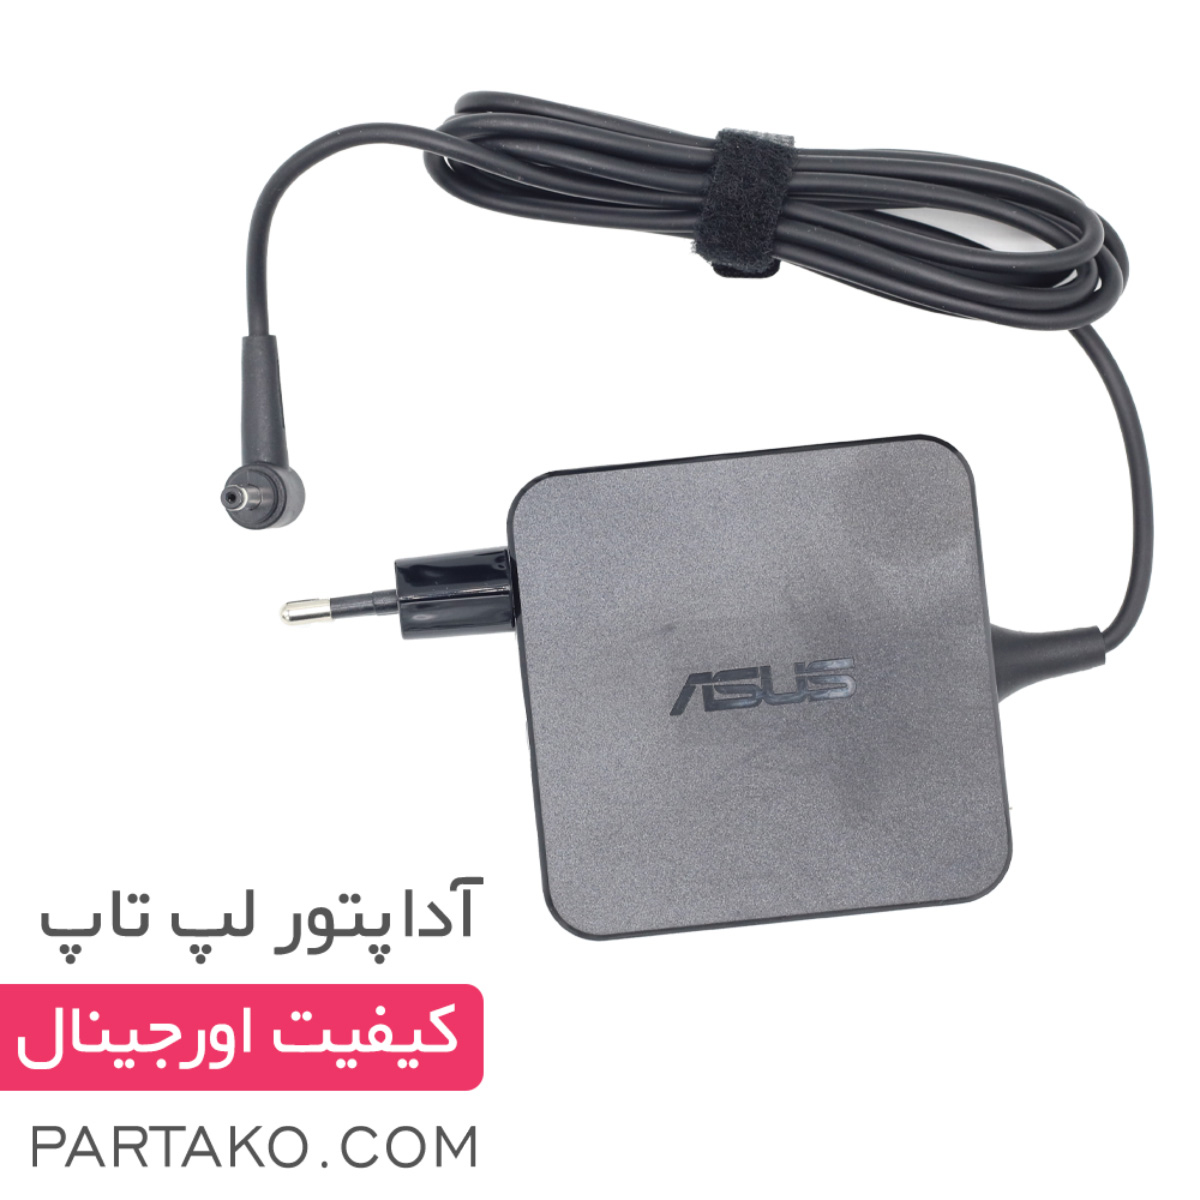 image شارژر لپ تاپ ایسوس 19 ولت 3.42 آمپر ADP-65AW A | ADAPTER ASUS 19V 3.42A